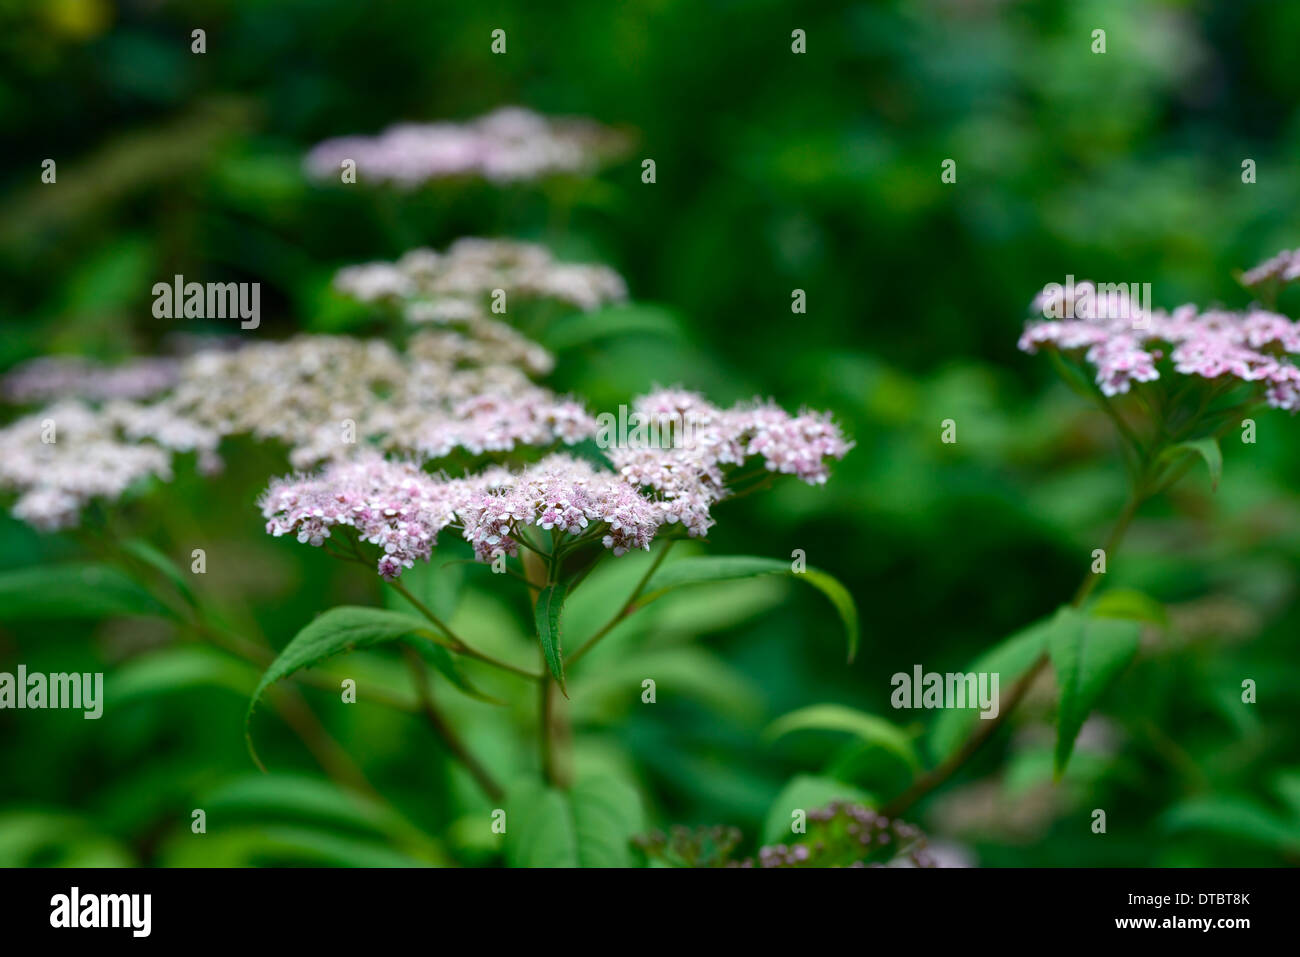 Spiraea japonica var fortunei plant portraits flowers flowering stock photo spiraea japonica var fortunei plant portraits flowers flowering shrubs green leaf leaves foliage small tiny pink flower flowers dhlflorist Gallery